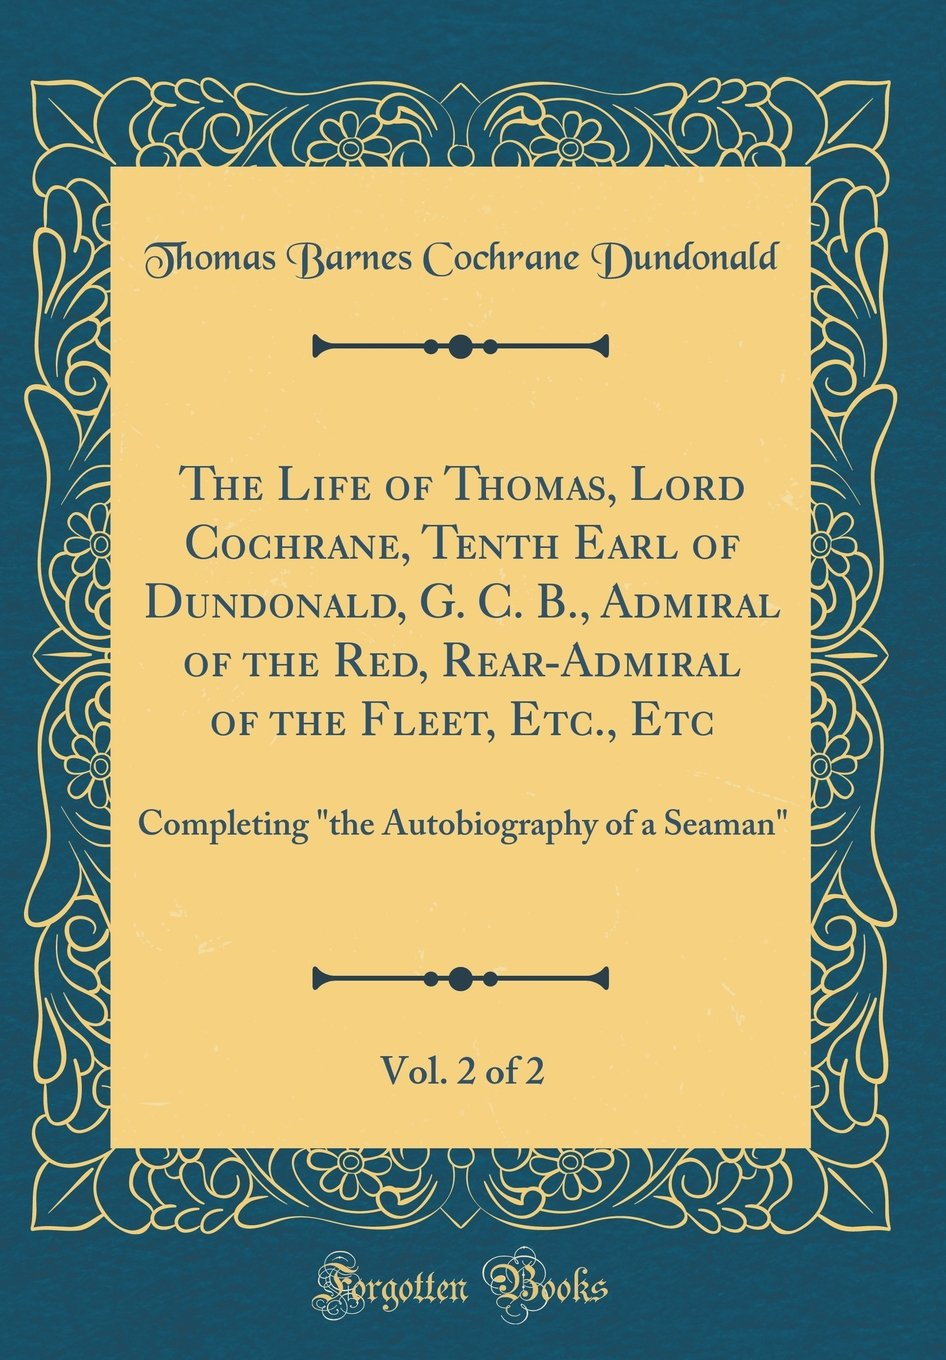 """Read Online The Life of Thomas, Lord Cochrane, Tenth Earl of Dundonald, G. C. B., Admiral of the Red, Rear-Admiral of the Fleet, Etc., Etc, Vol. 2 of 2: ... Autobiography of a Seaman"""" (Classic Reprint) ebook"""